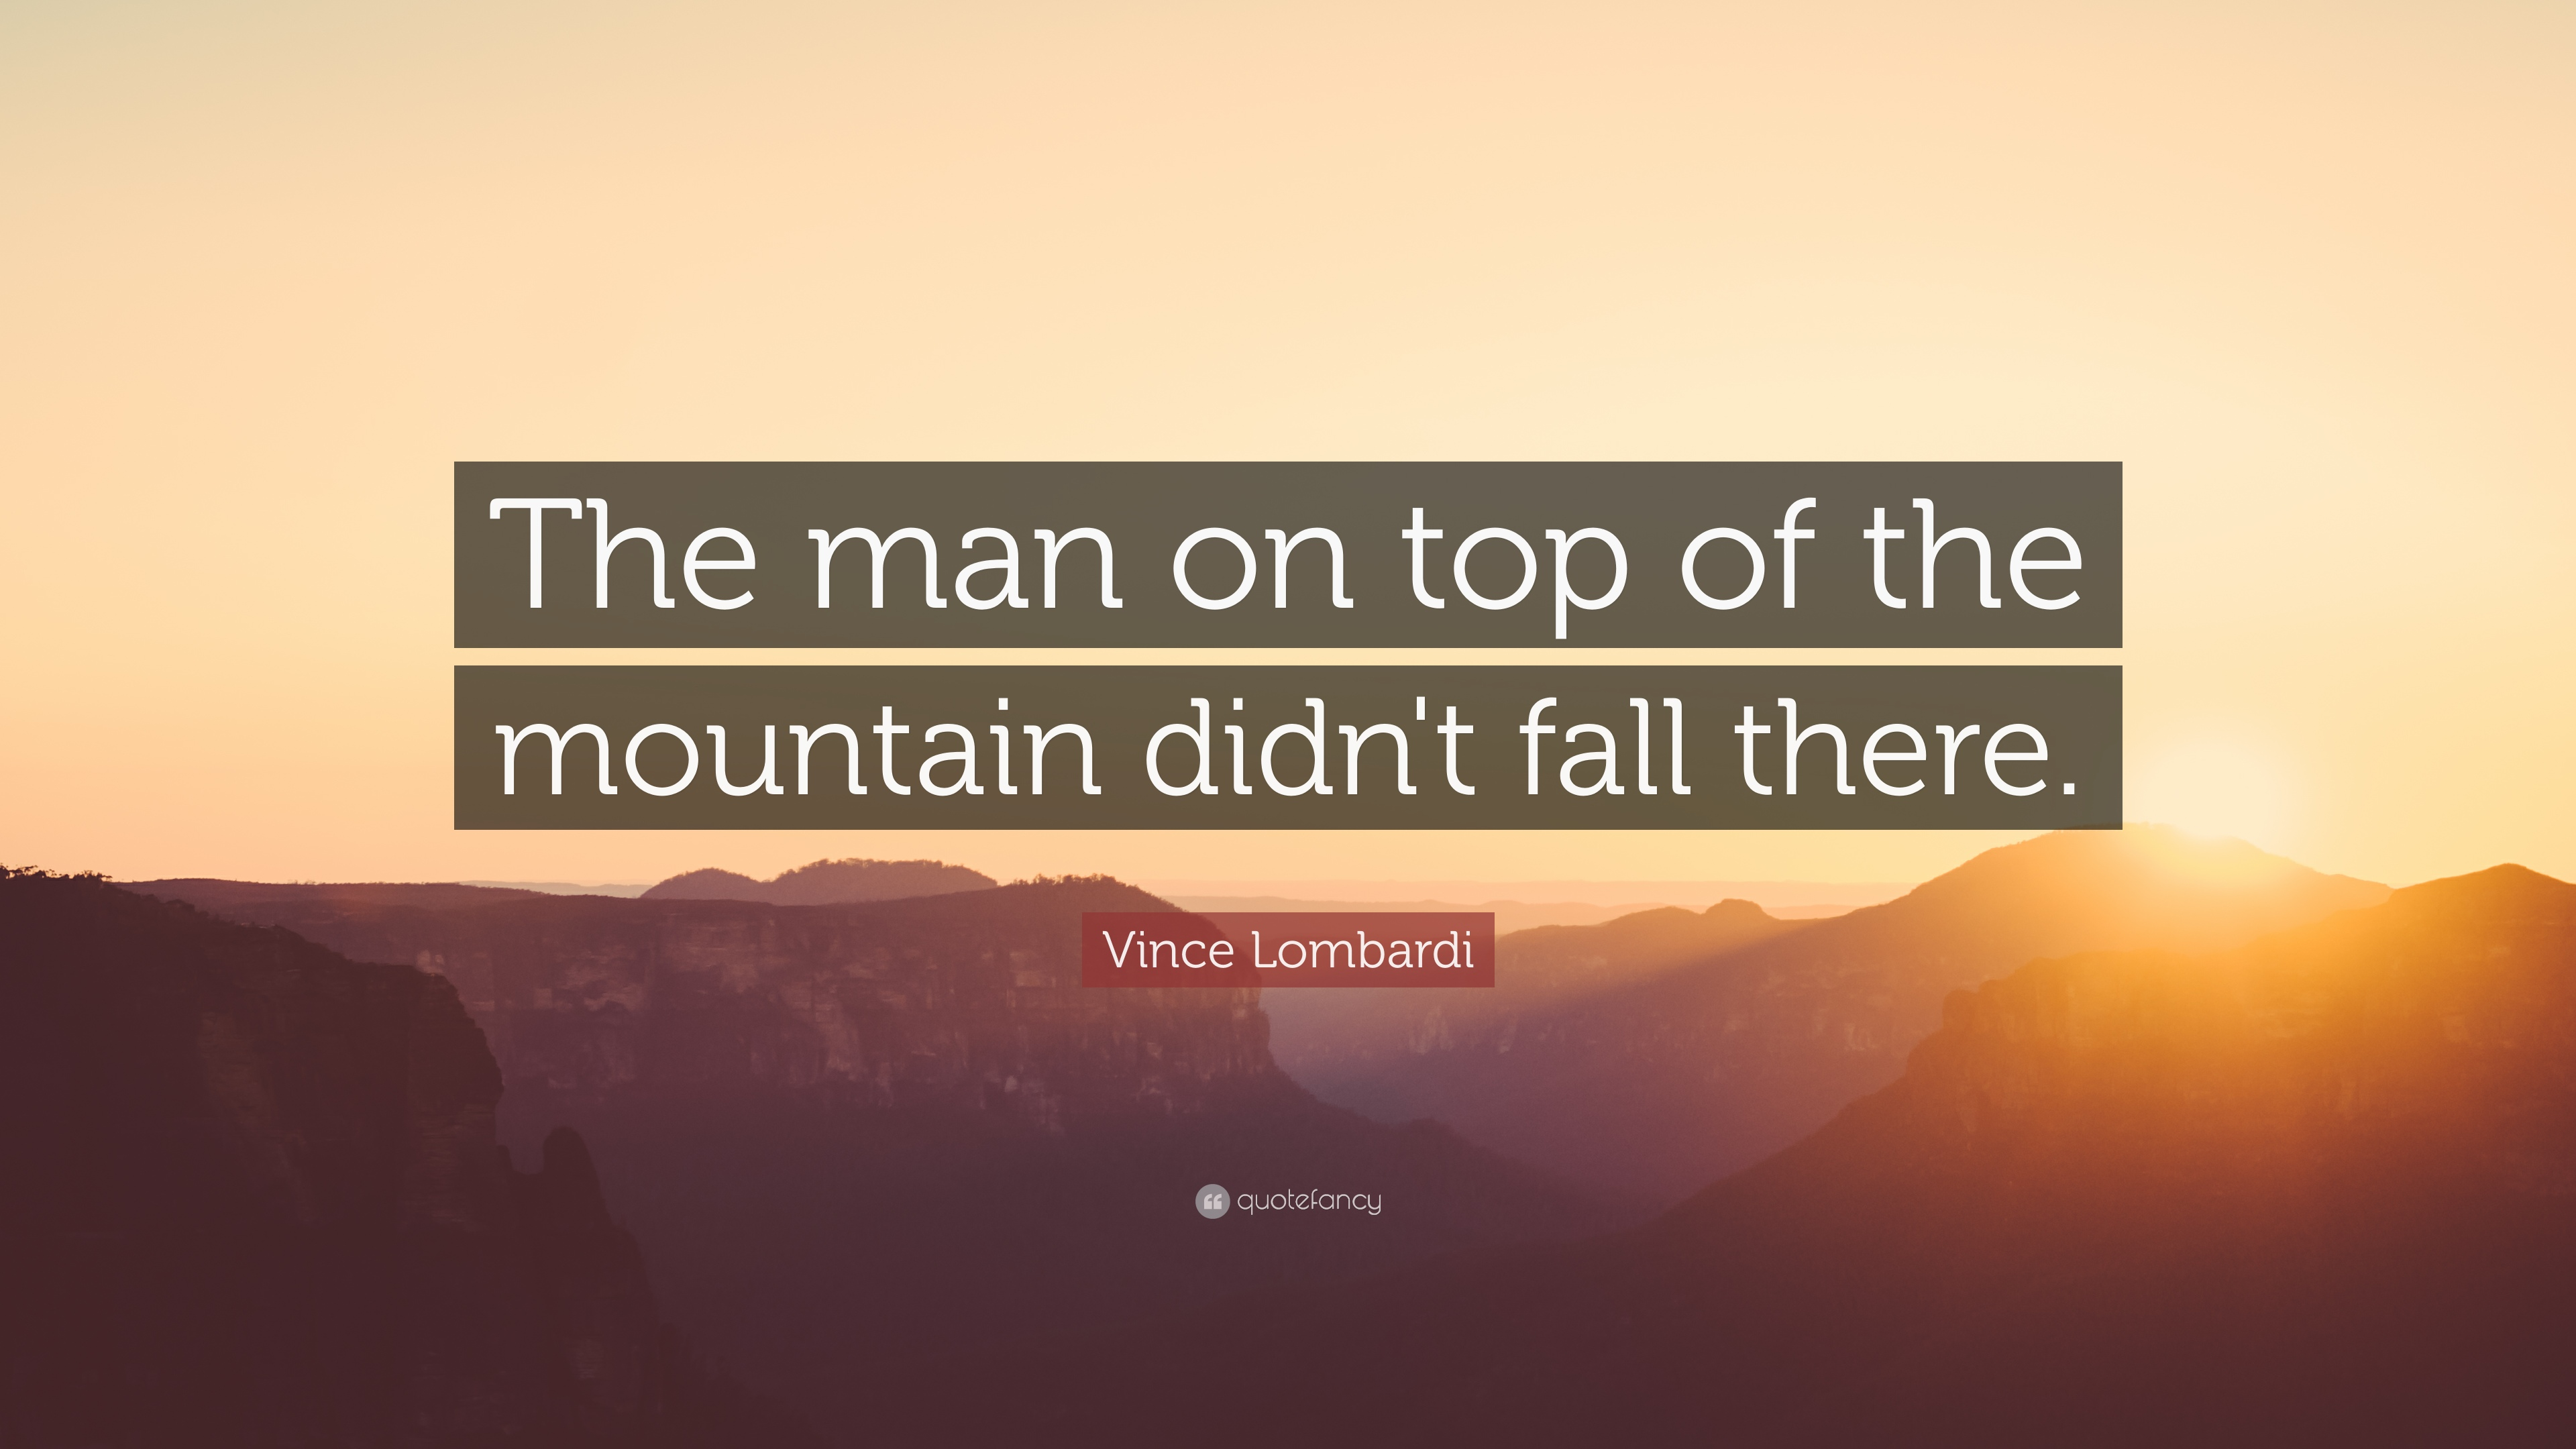 Football Motivational Quotes Wallpaper Vince Lombardi Quote The Man On Top Of The Mountain Didn